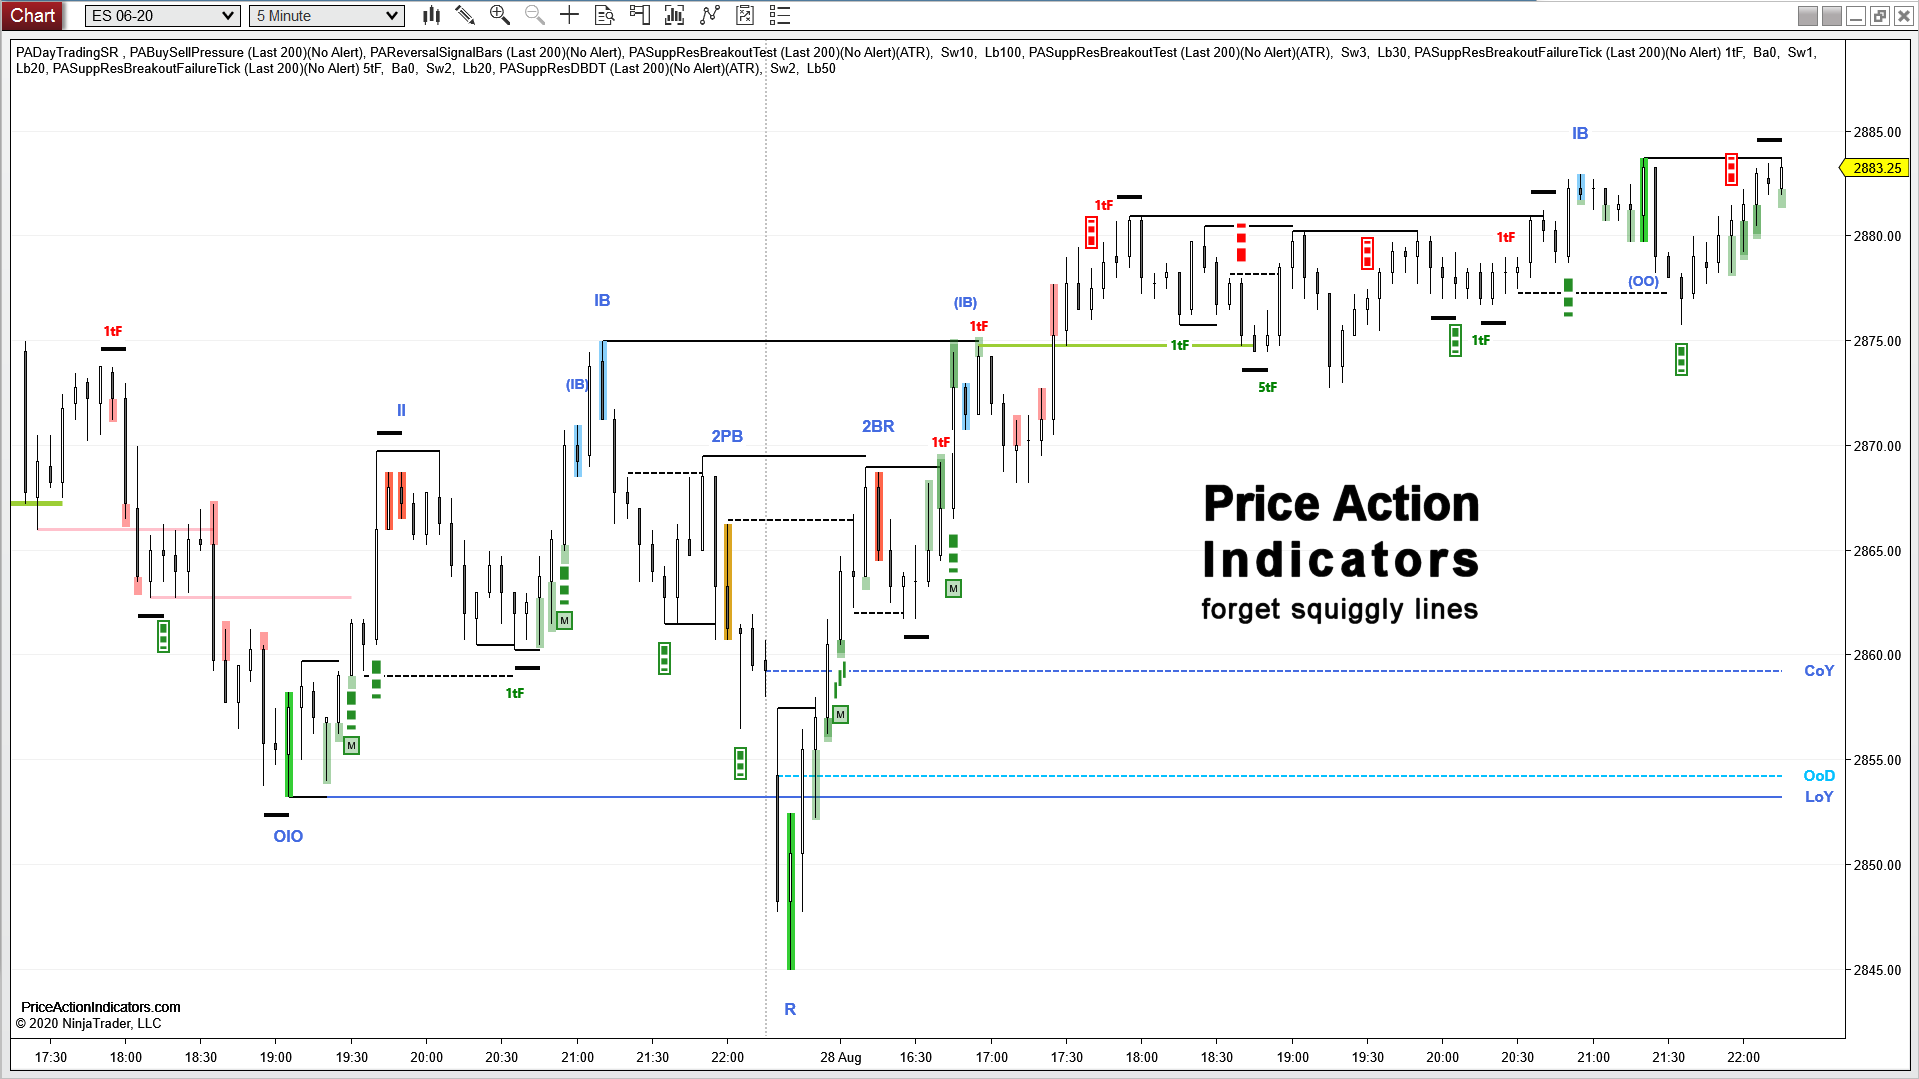 Price Action Indicators